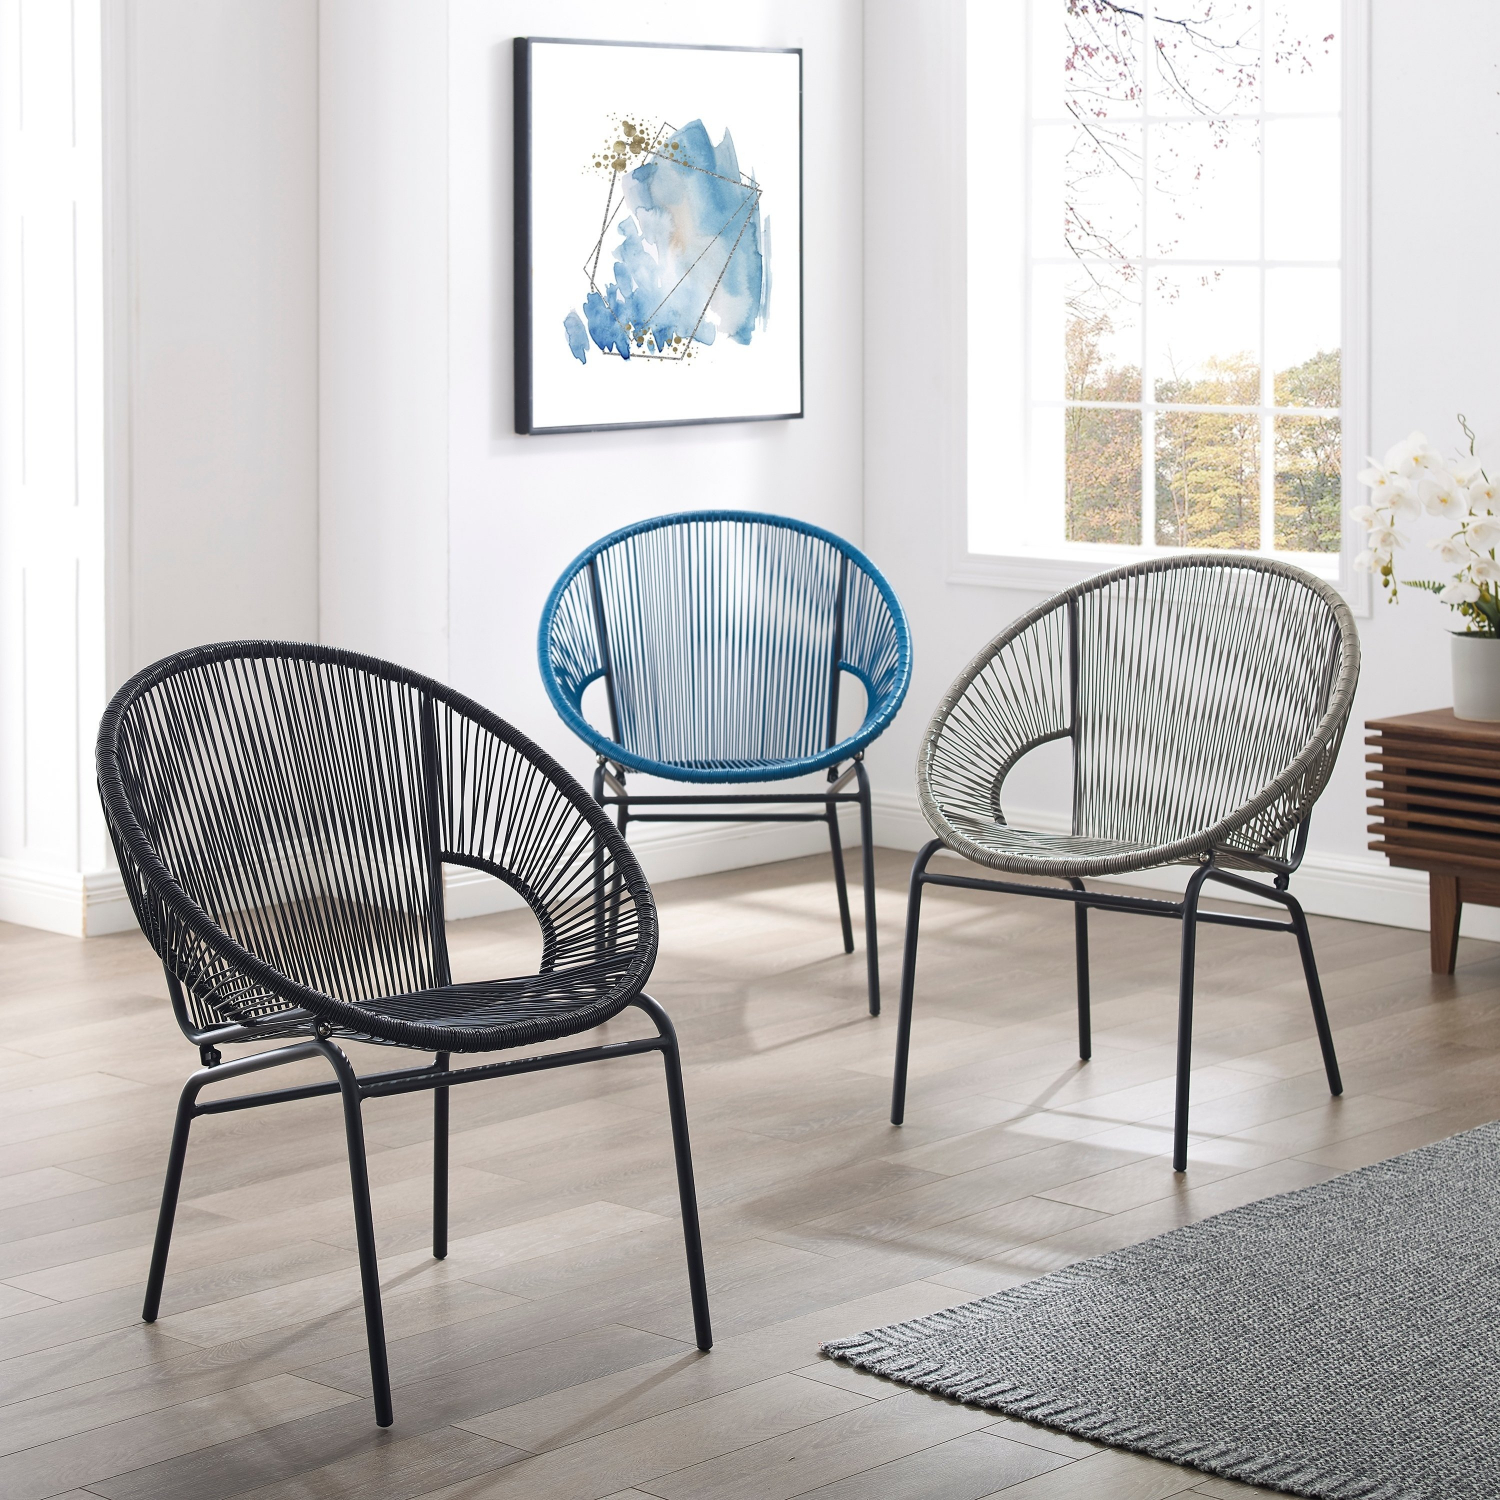 Fabulous Details About Corvus Sarcelles Woven Wicker Patio Chairs Set Of 2 Gmtry Best Dining Table And Chair Ideas Images Gmtryco